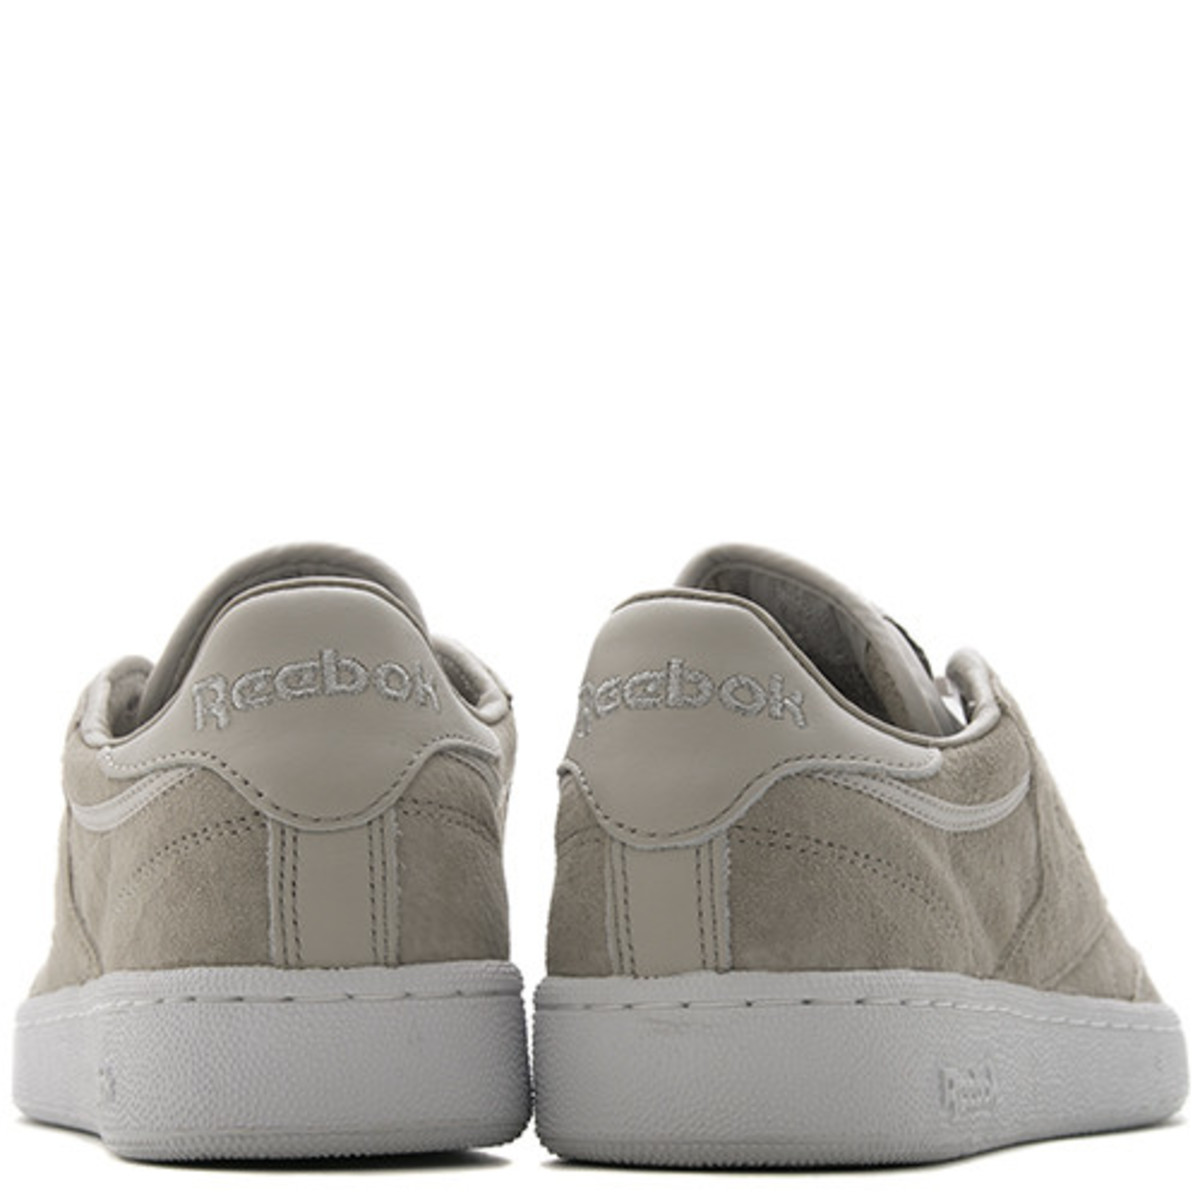 REEBOK CERTIFIED NETWORK X UNITED ARROWS BEAUTY AND YOUTH CLUB C AFF ... 54f4d8fa0